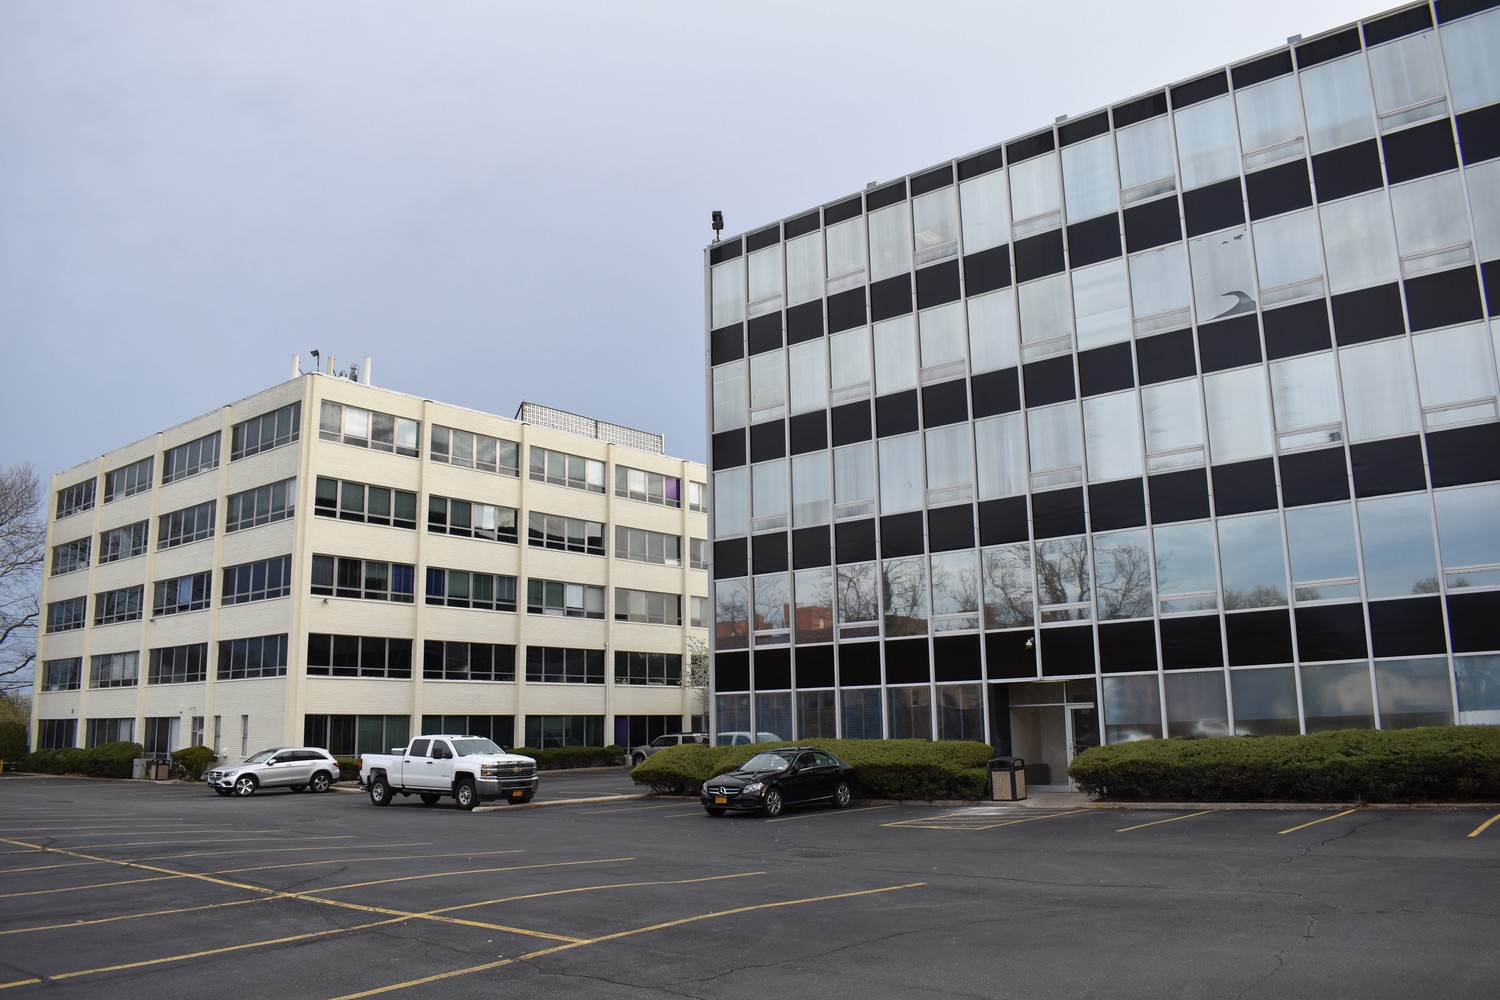 Investment firm buys Merrick Road office complex | Herald Community on